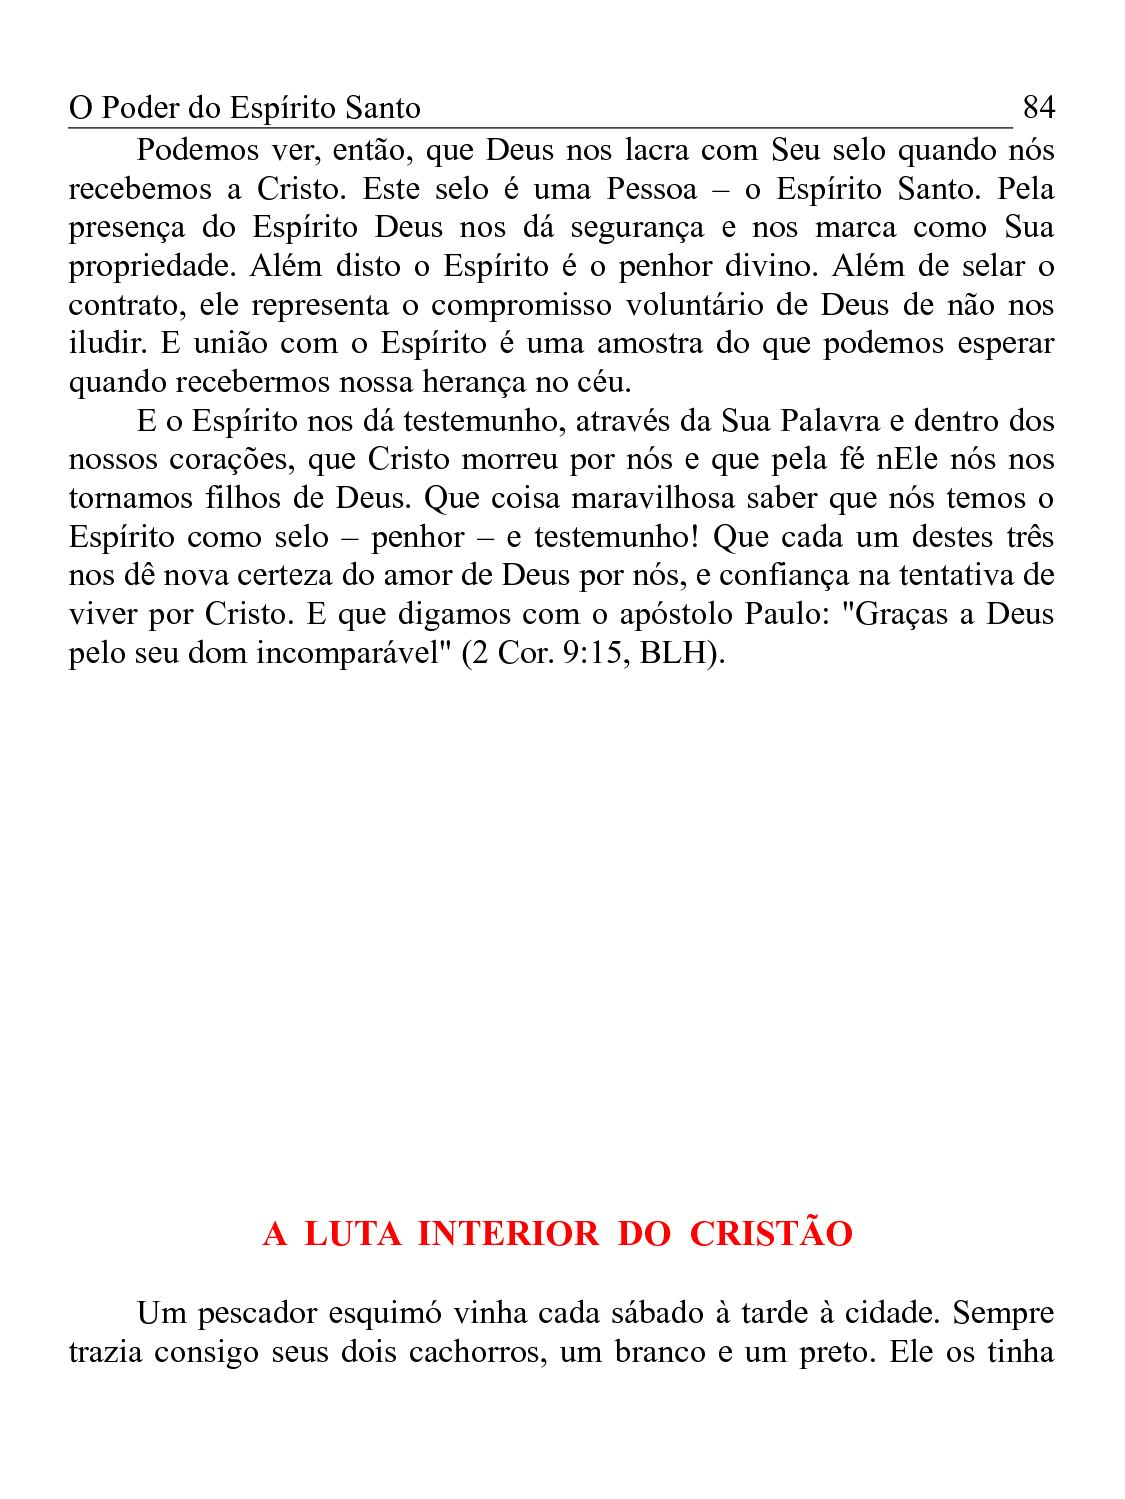 Page 84